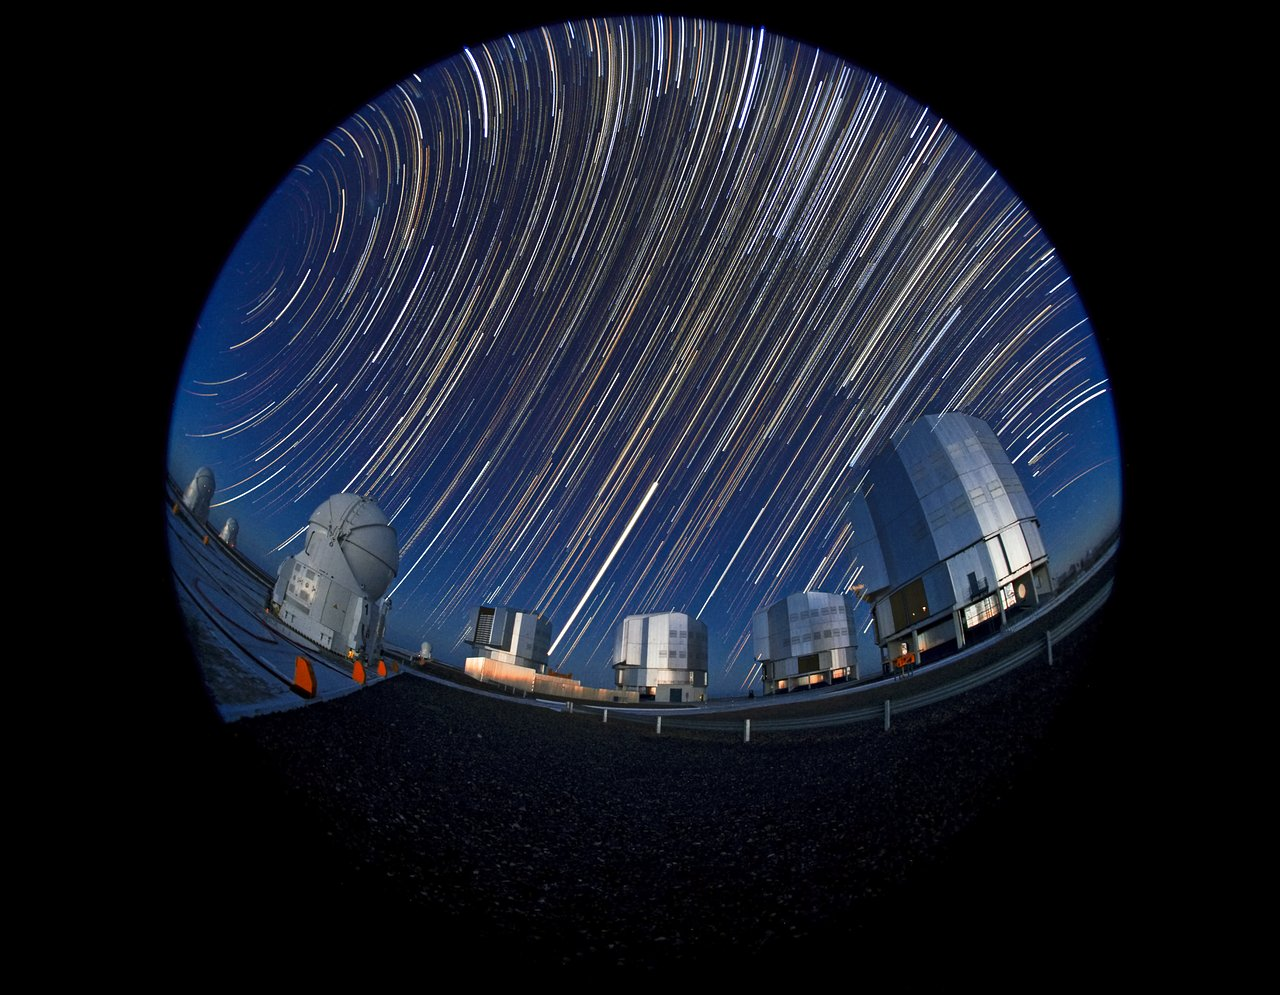 End of the night at Paranal Observatory